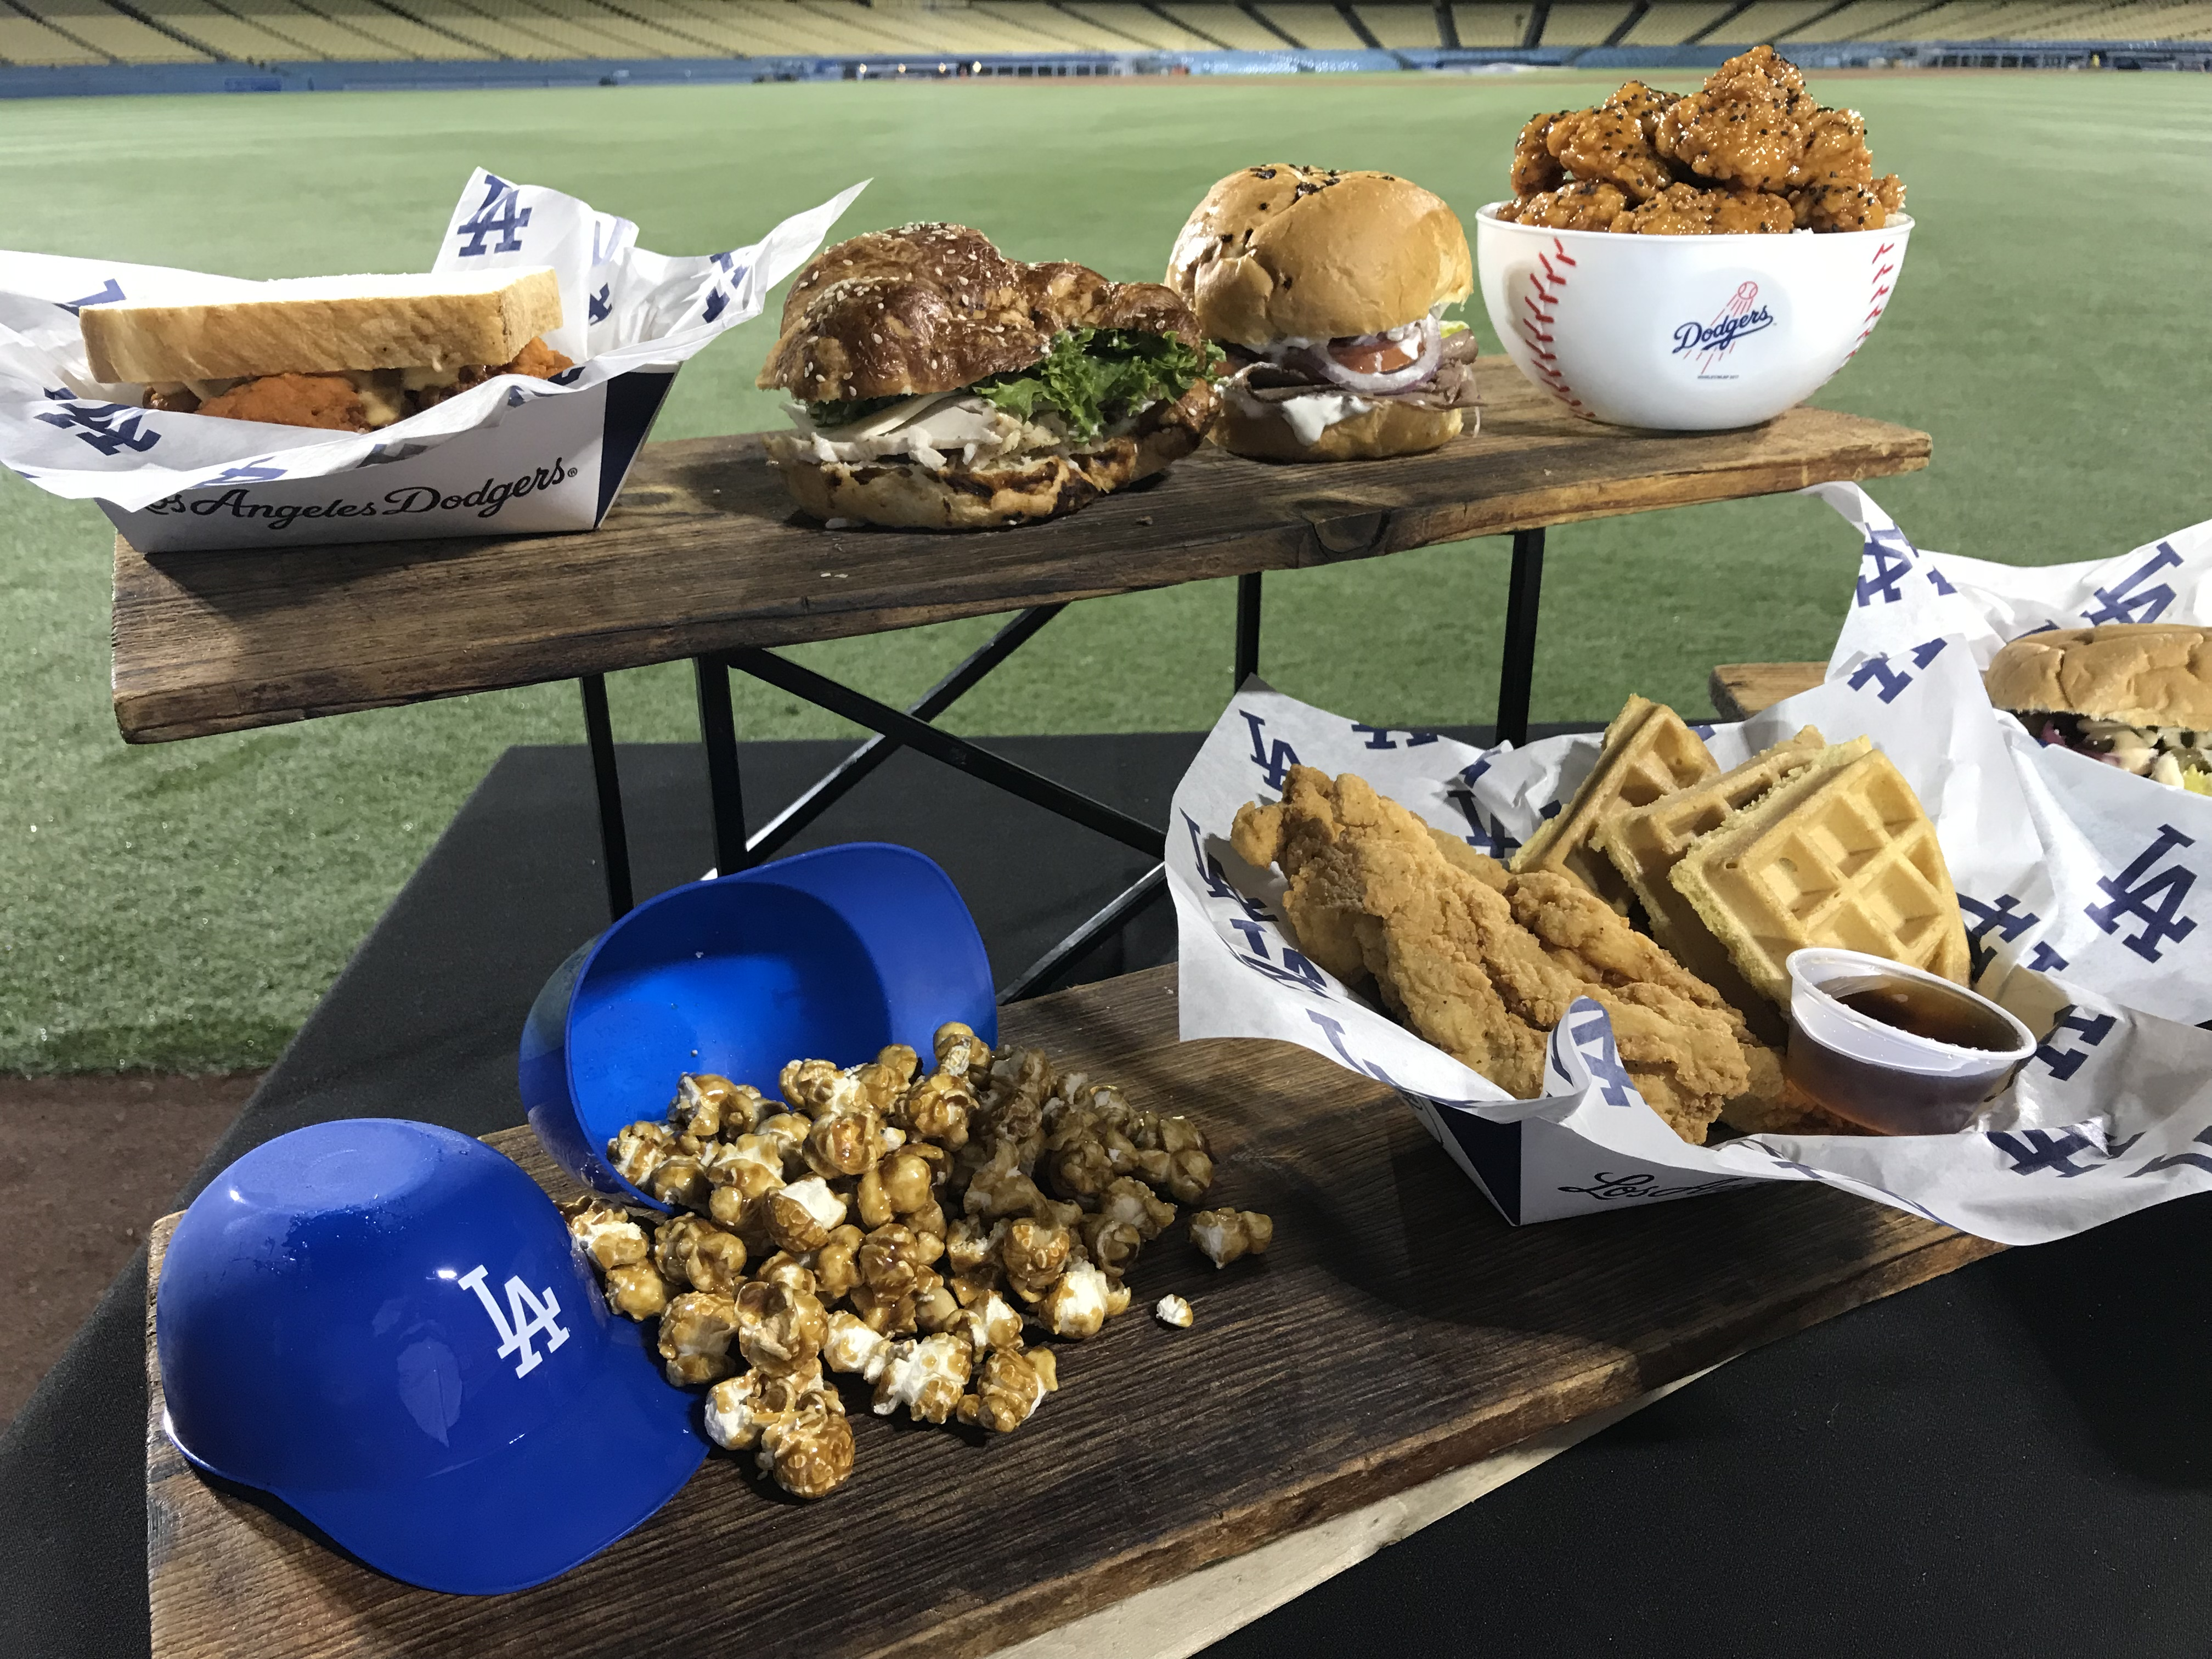 <div class='meta'><div class='origin-logo' data-origin='none'></div><span class='caption-text' data-credit='KABC'>An array of food items ranging from chicken and waffles to popcorn are displayed at Dodger Stadium.</span></div>